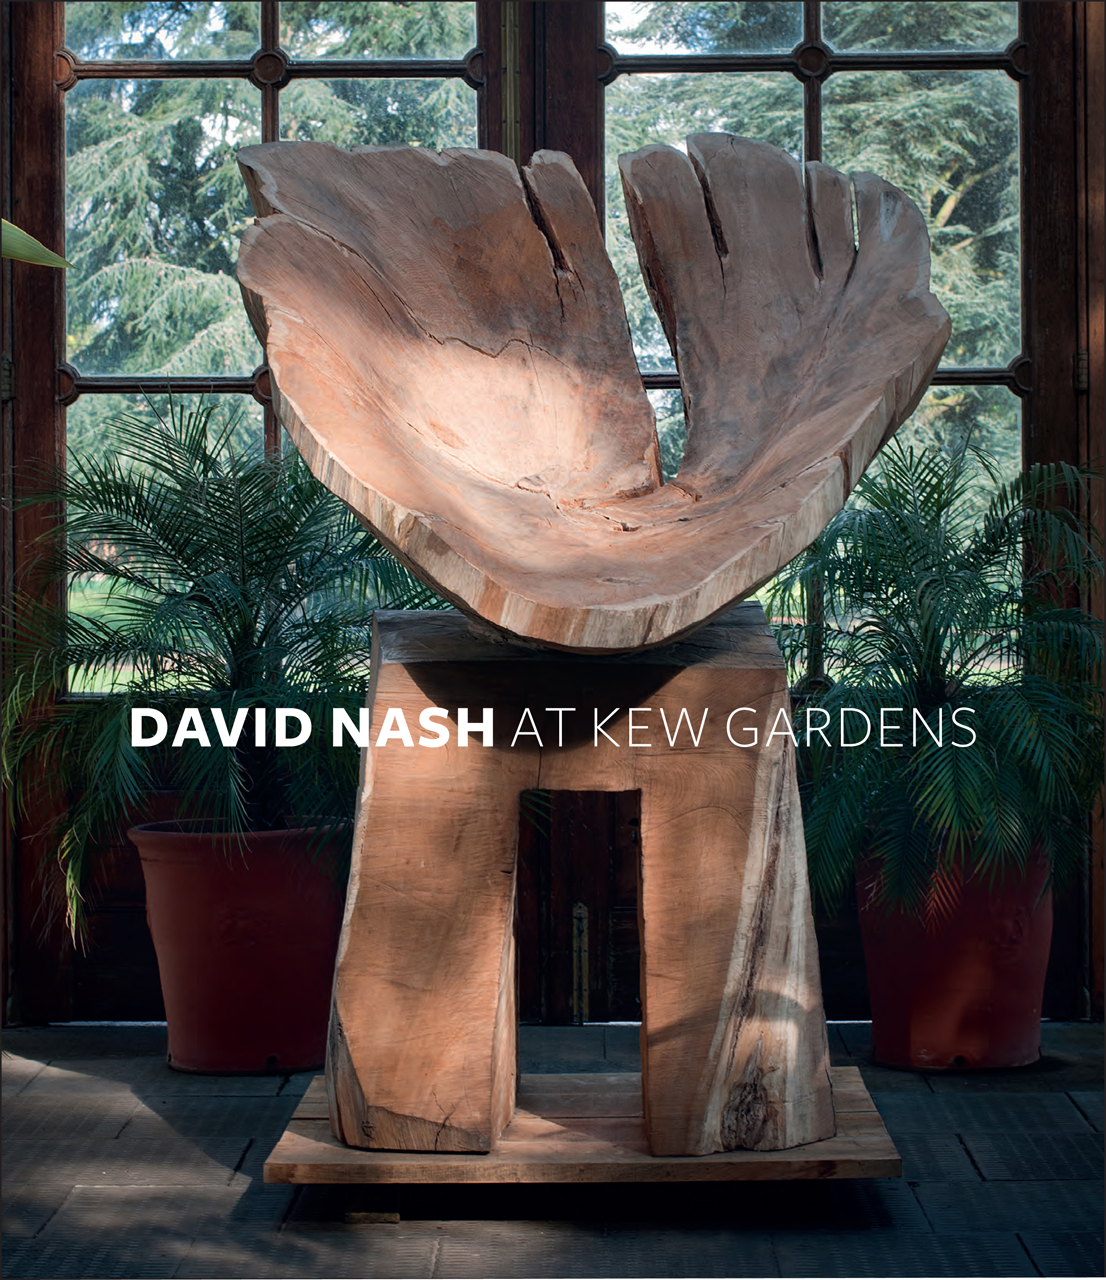 David Nash at Kew Gardens